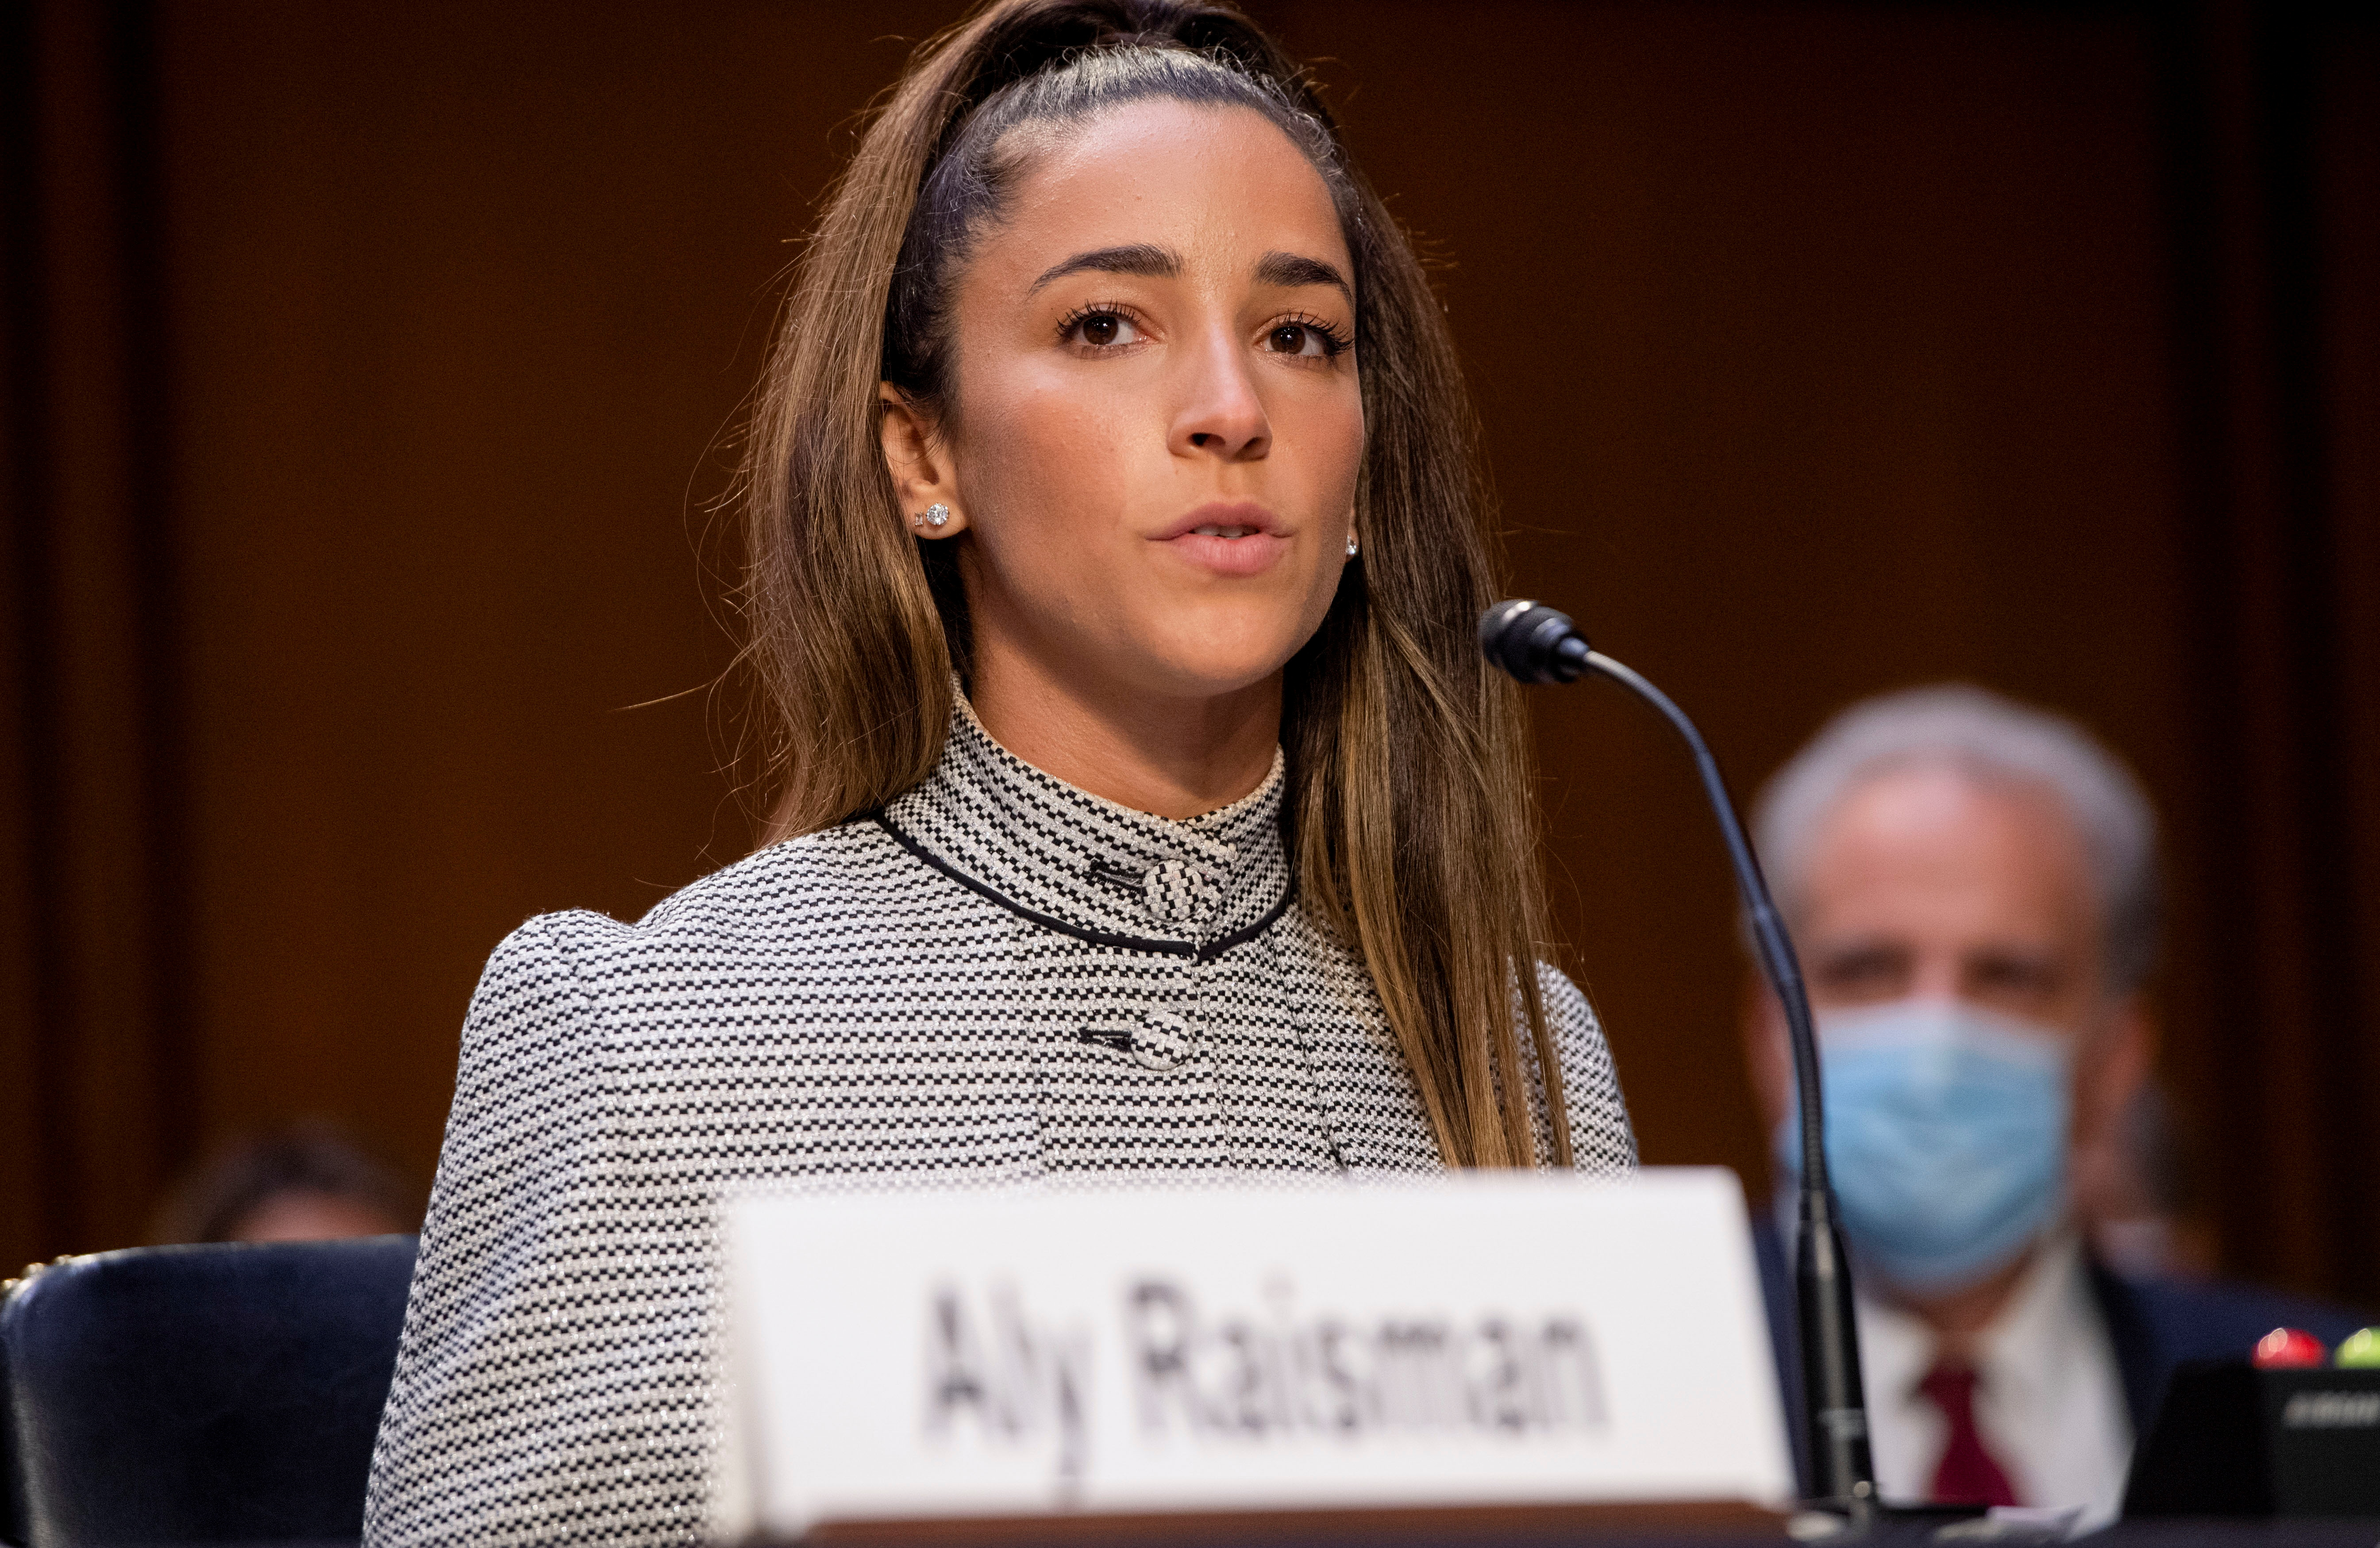 U.S. Olympic gymnast Aly Raisman testifies during a Senate Judiciary hearing about the Inspector General's report on the FBI handling of the Larry Nassar investigation of sexual abuse of Olympic gymnasts, on Capitol Hill, in Washington, D.C., U.S., September 15, 2021. Saul Loeb/Pool via REUTERS